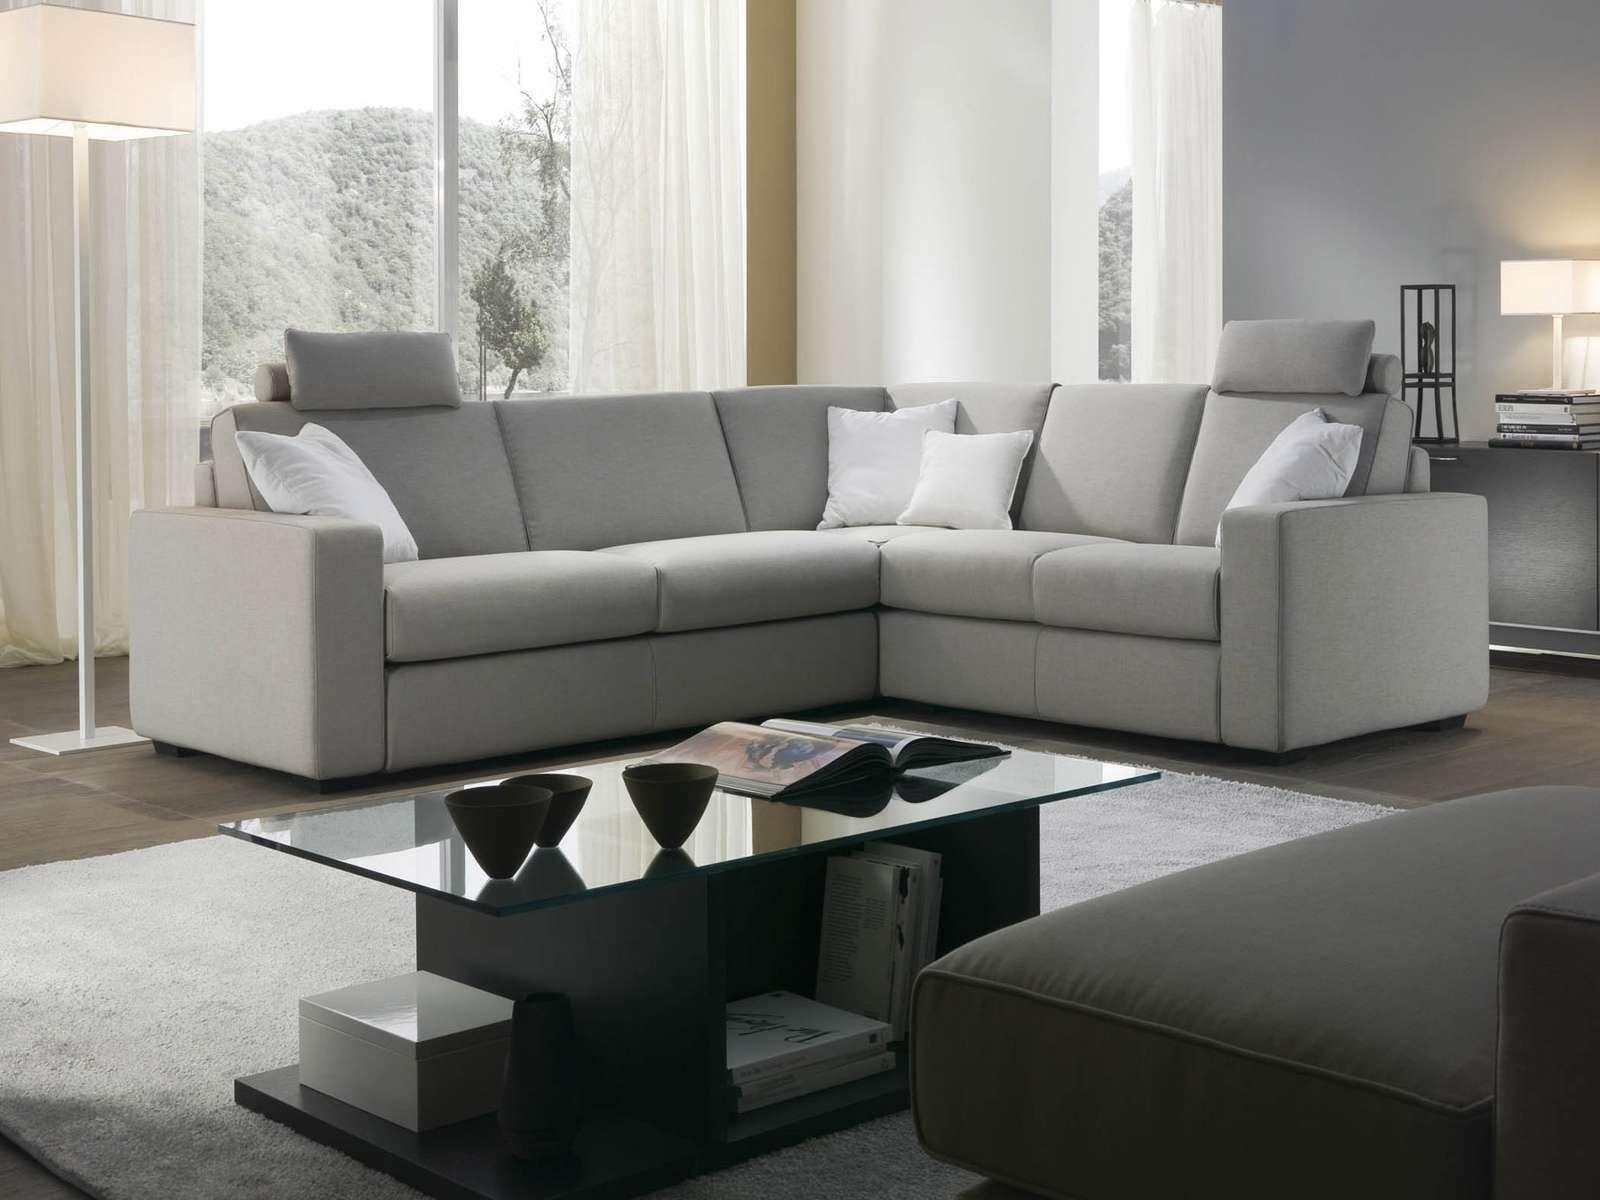 chateau d ax leather sofa year of clean water rh yearofcleanwater org